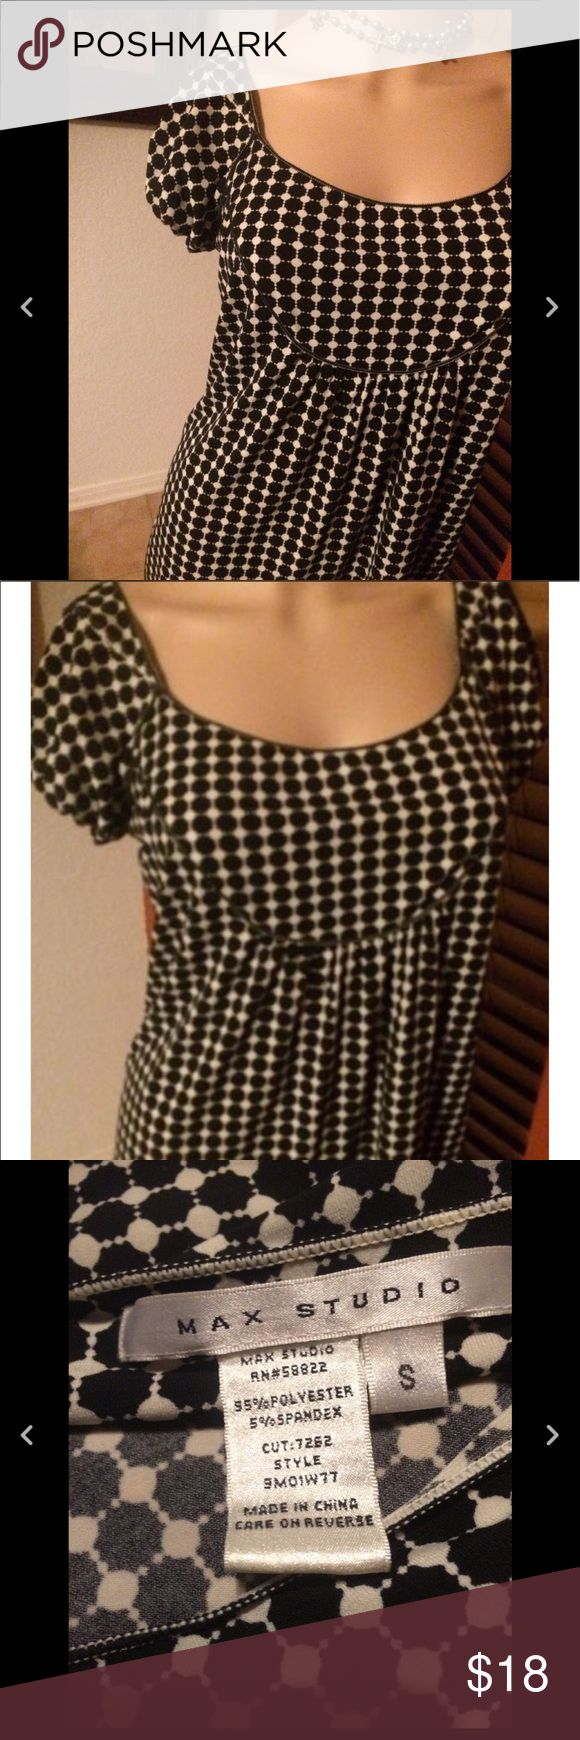 Max Studio By Leon Max Edition top Small Max studio black & white top small preowned but still nice  **No Trades** Only Reasonable offers will be considered **sold as is in preowned/ used condition with the expected wear associated with/to preowned used items Max Studio Tops Blouses